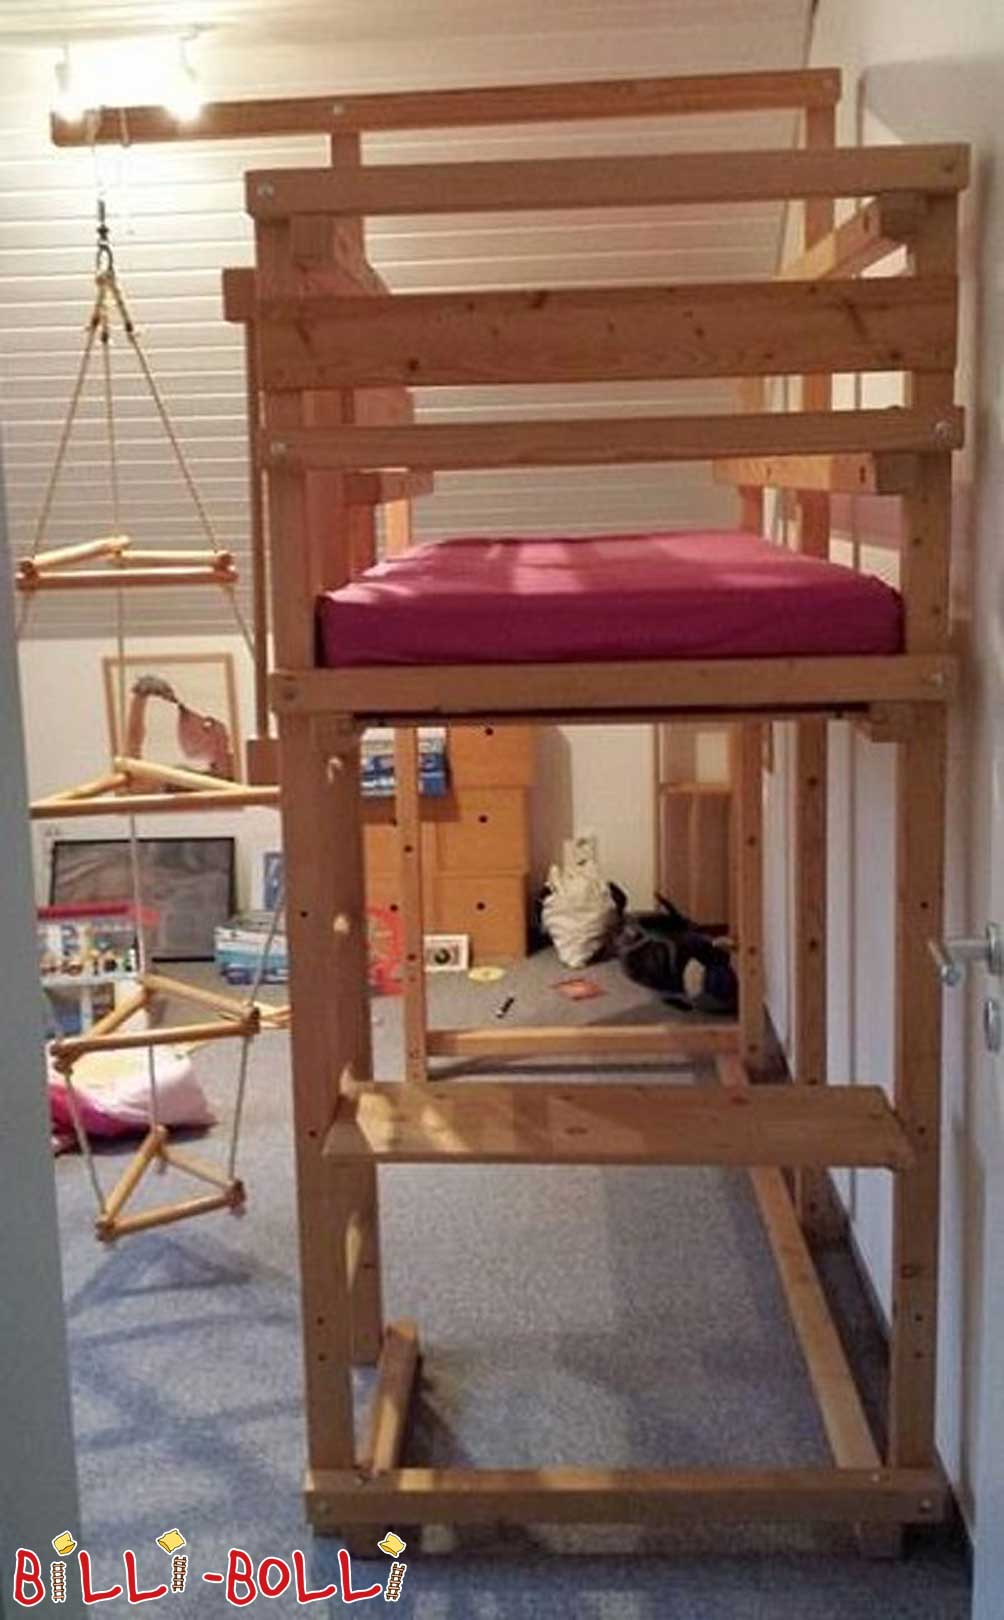 Croissant with bunk beds 80 x 190 cm, jaw if left untreated (second hand loft bed)